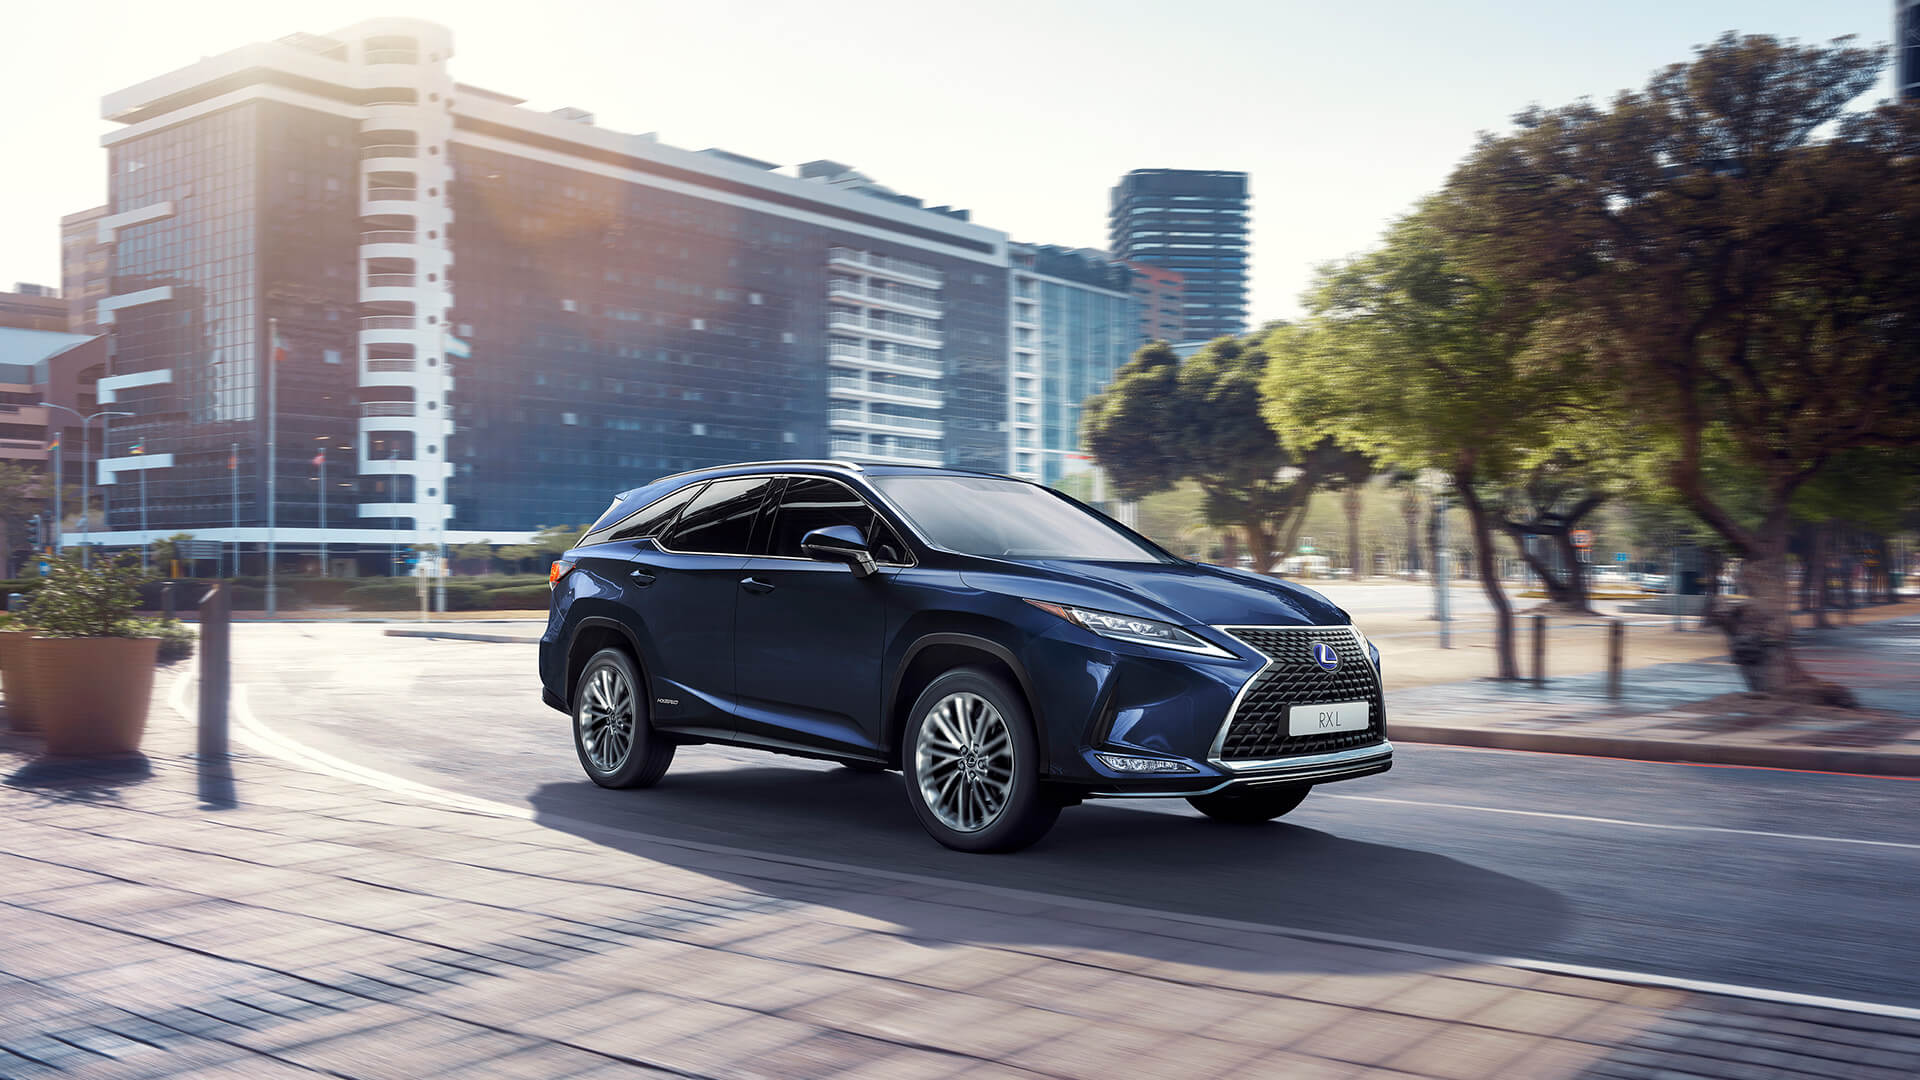 2019 lexus news chantilly 810x1080 rx 1